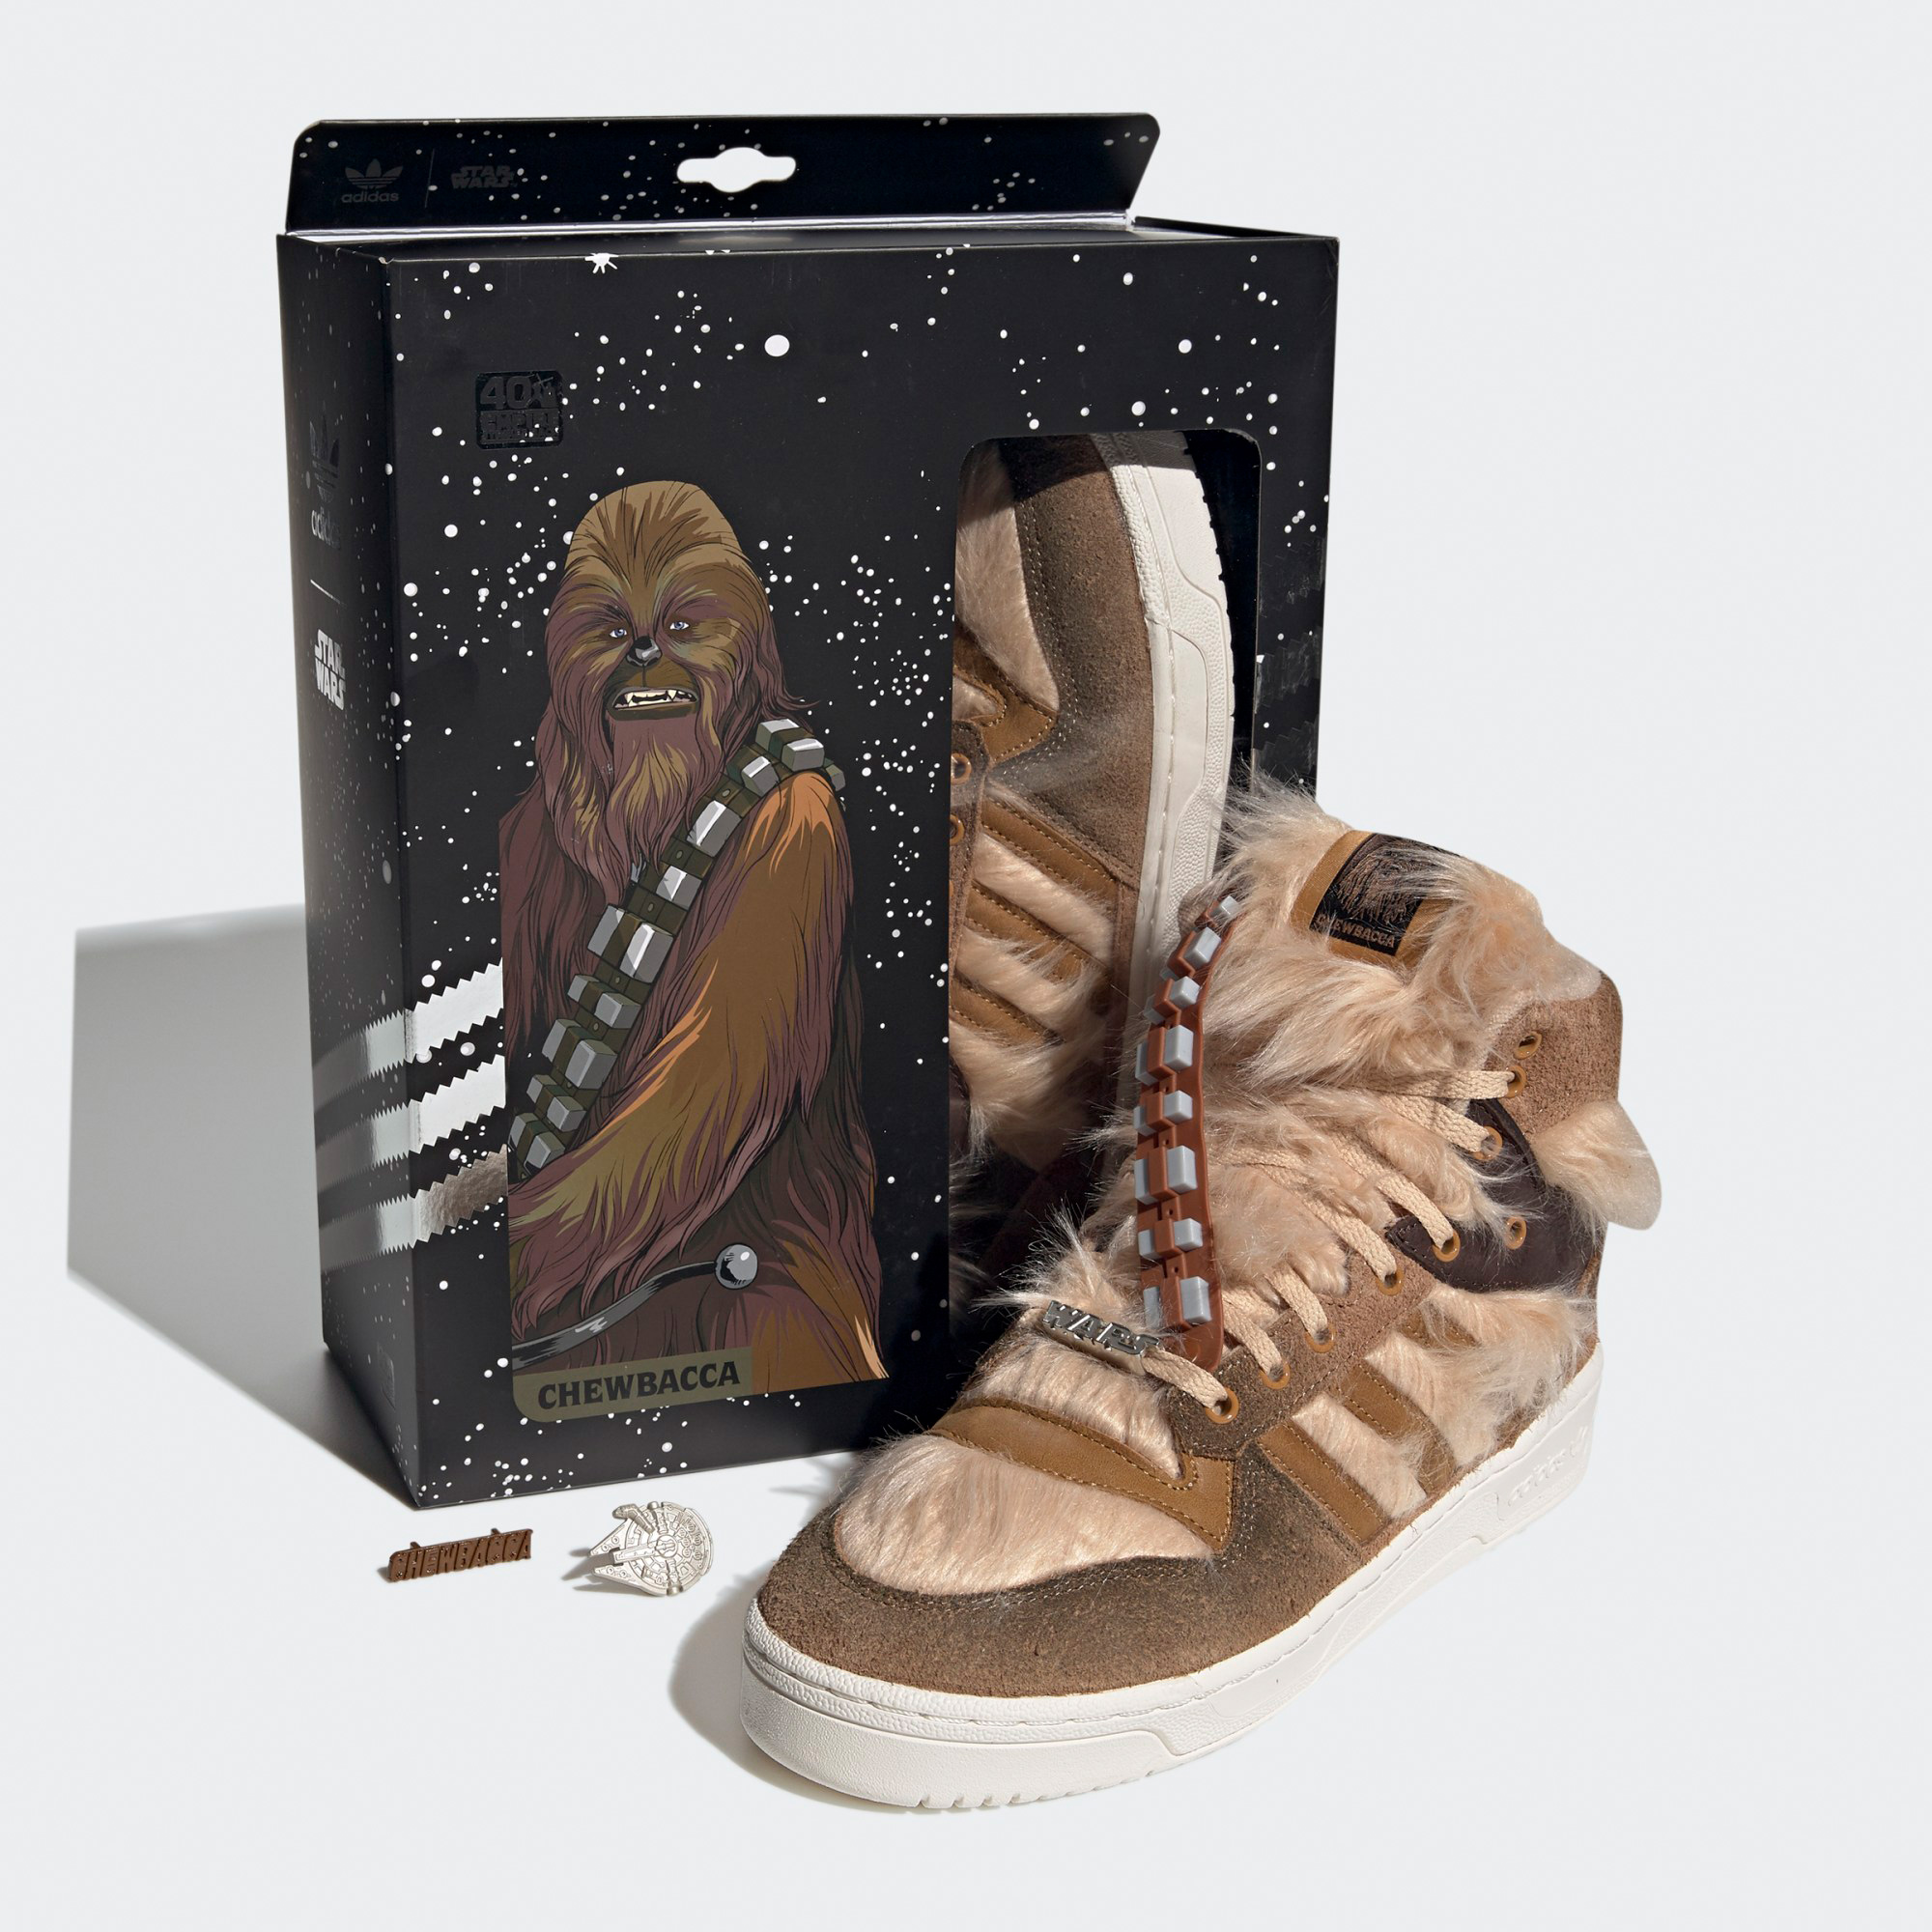 Adidas RIVALRY HI STAR WARS SHOES Ode to Chewbacca